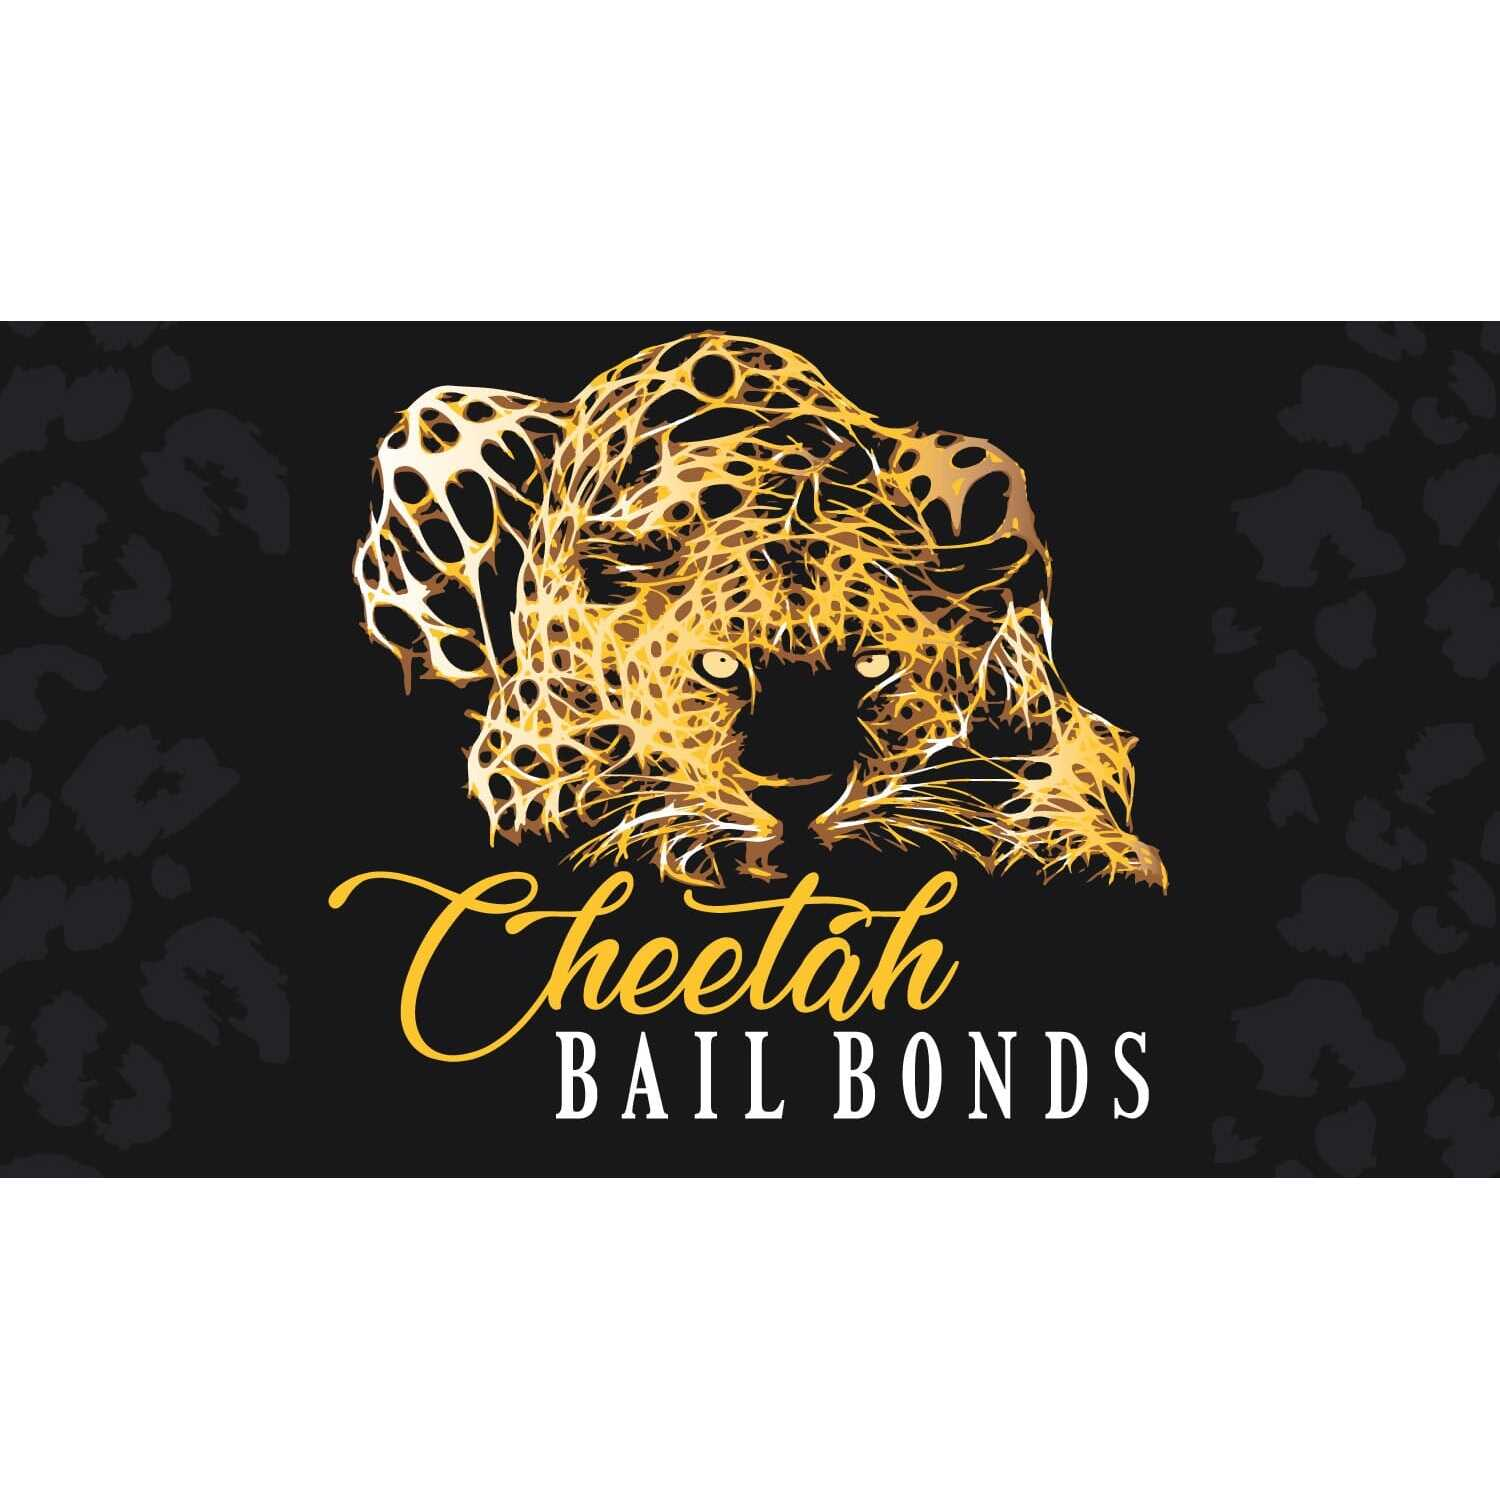 Cheetah Bail Bonds, LLC